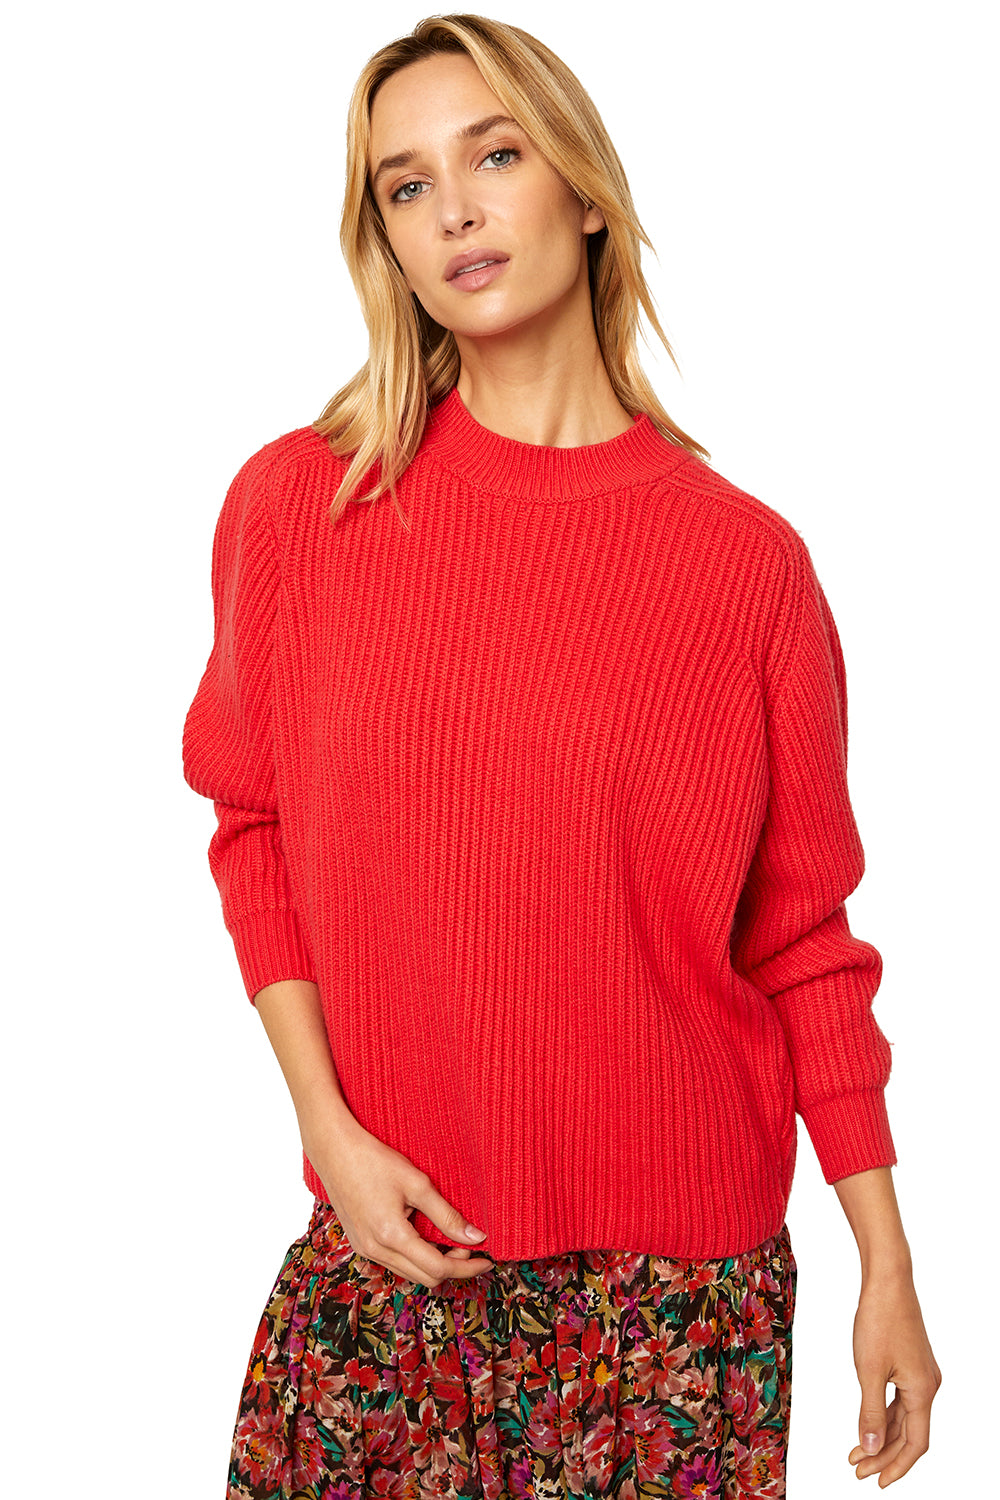 DOMINIQUE SWEATER - MISA Los Angeles